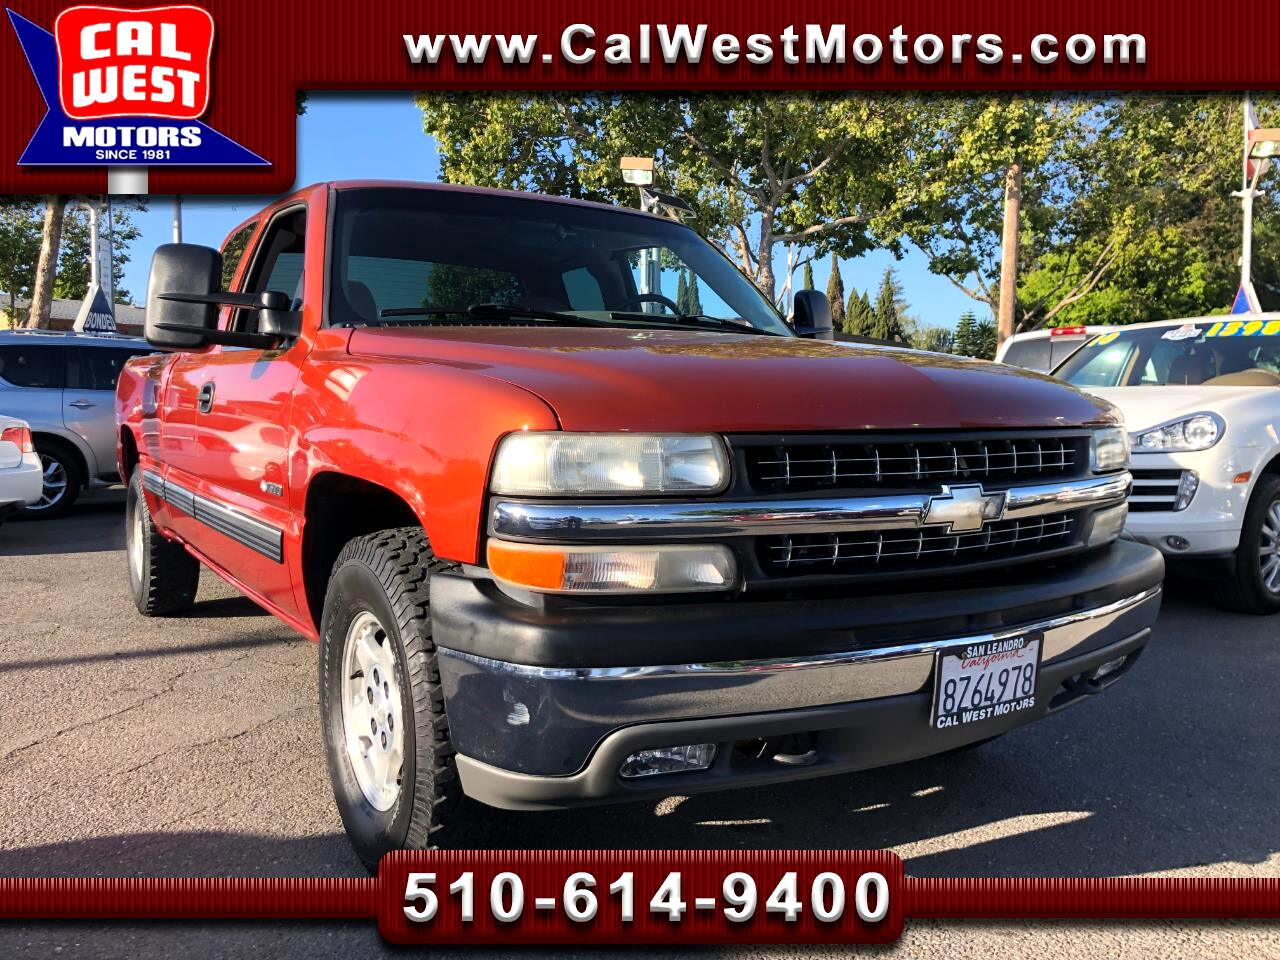 2001 Chevrolet Silverado 1500 4X4 Z71OffRoad TowPk LoMiles VeryClean ExMtnce